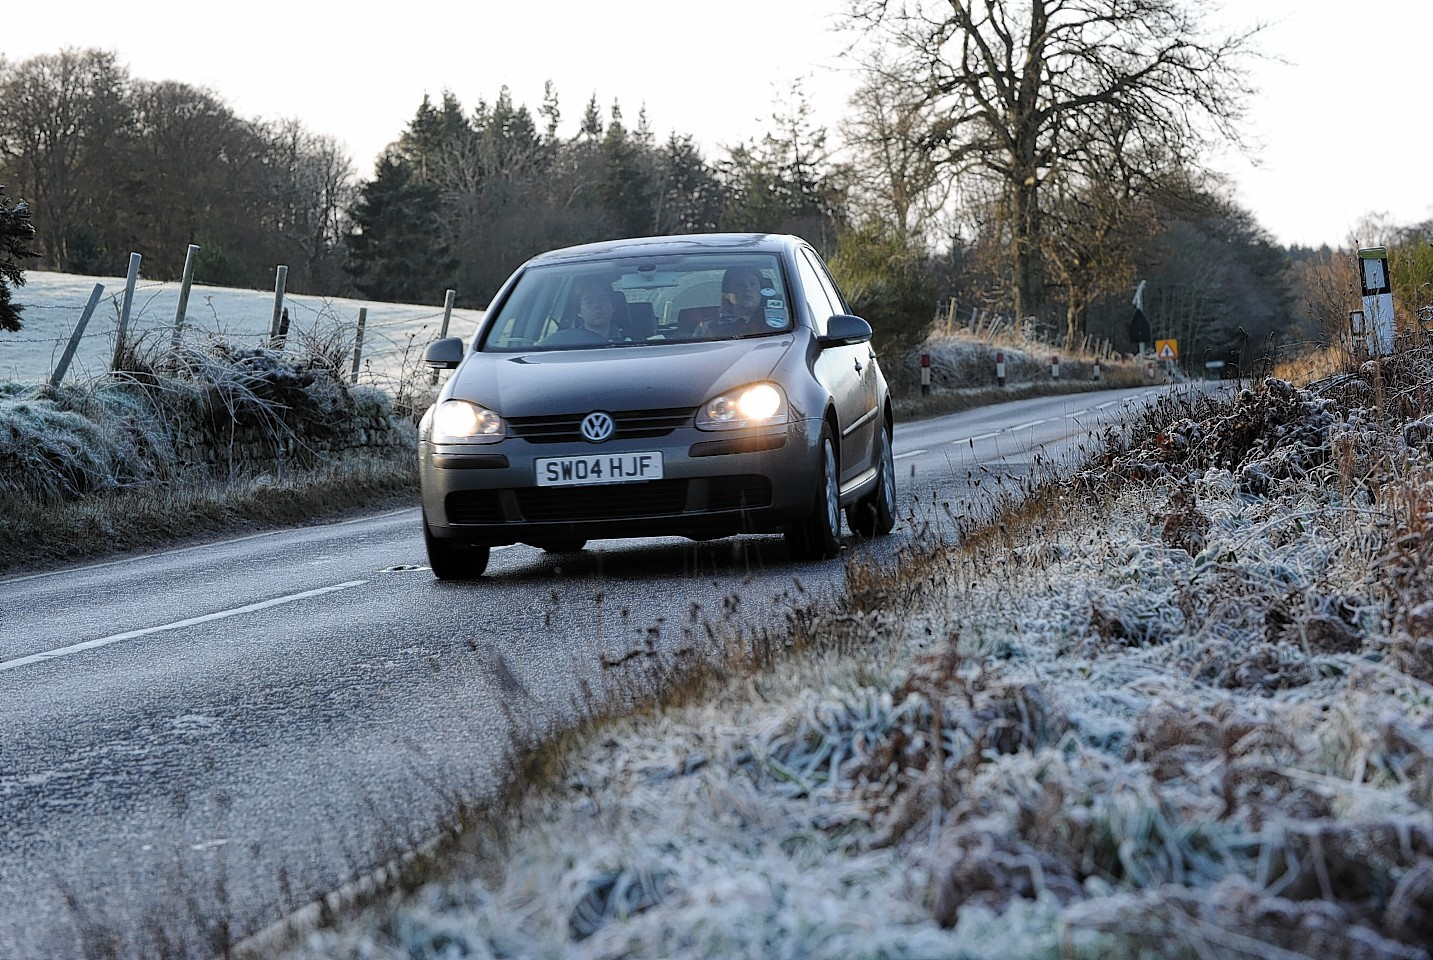 Western Isles roads could be affected by black ice